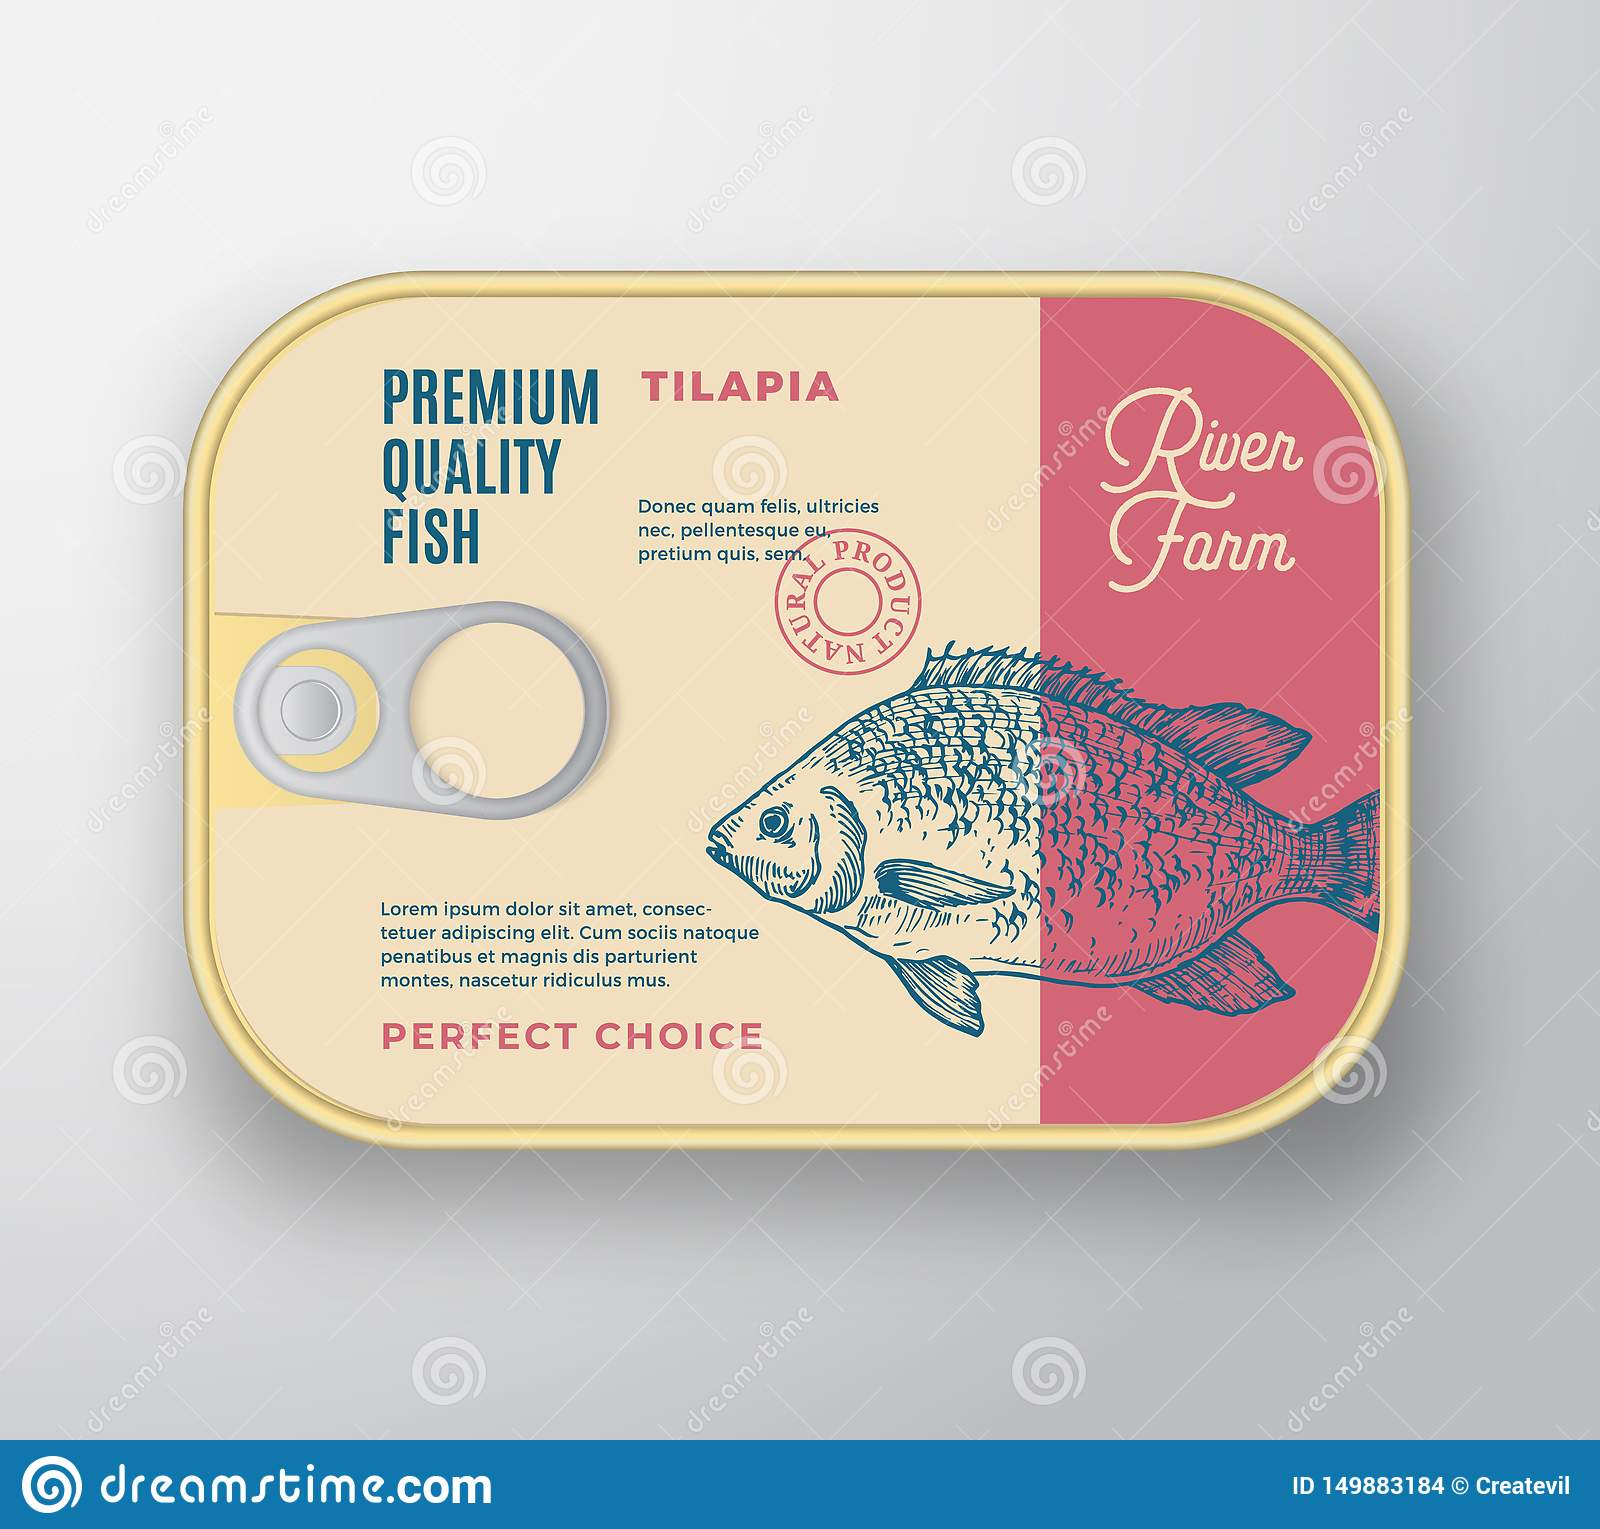 Tilapia Fish Label Diagram - Wiring Schematics